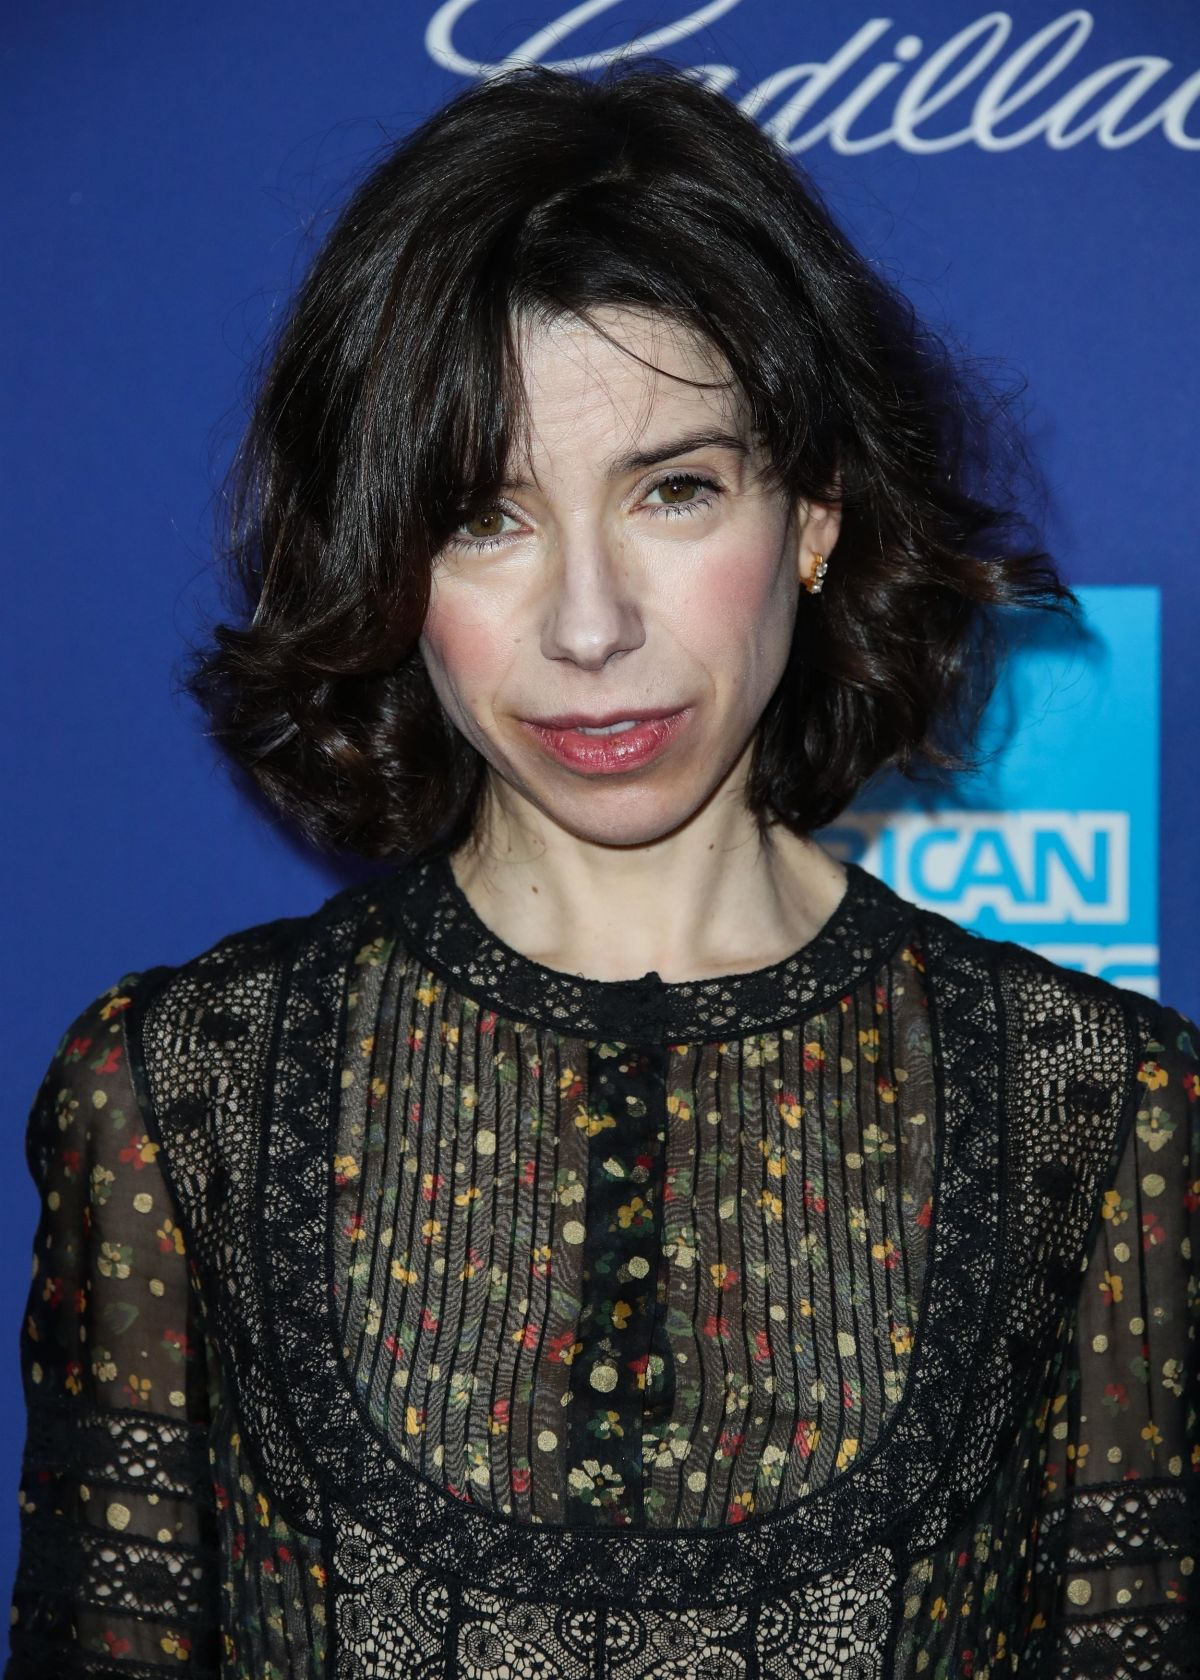 Sally Hawkins nudes (61 photos), Pussy, Paparazzi, Twitter, braless 2018